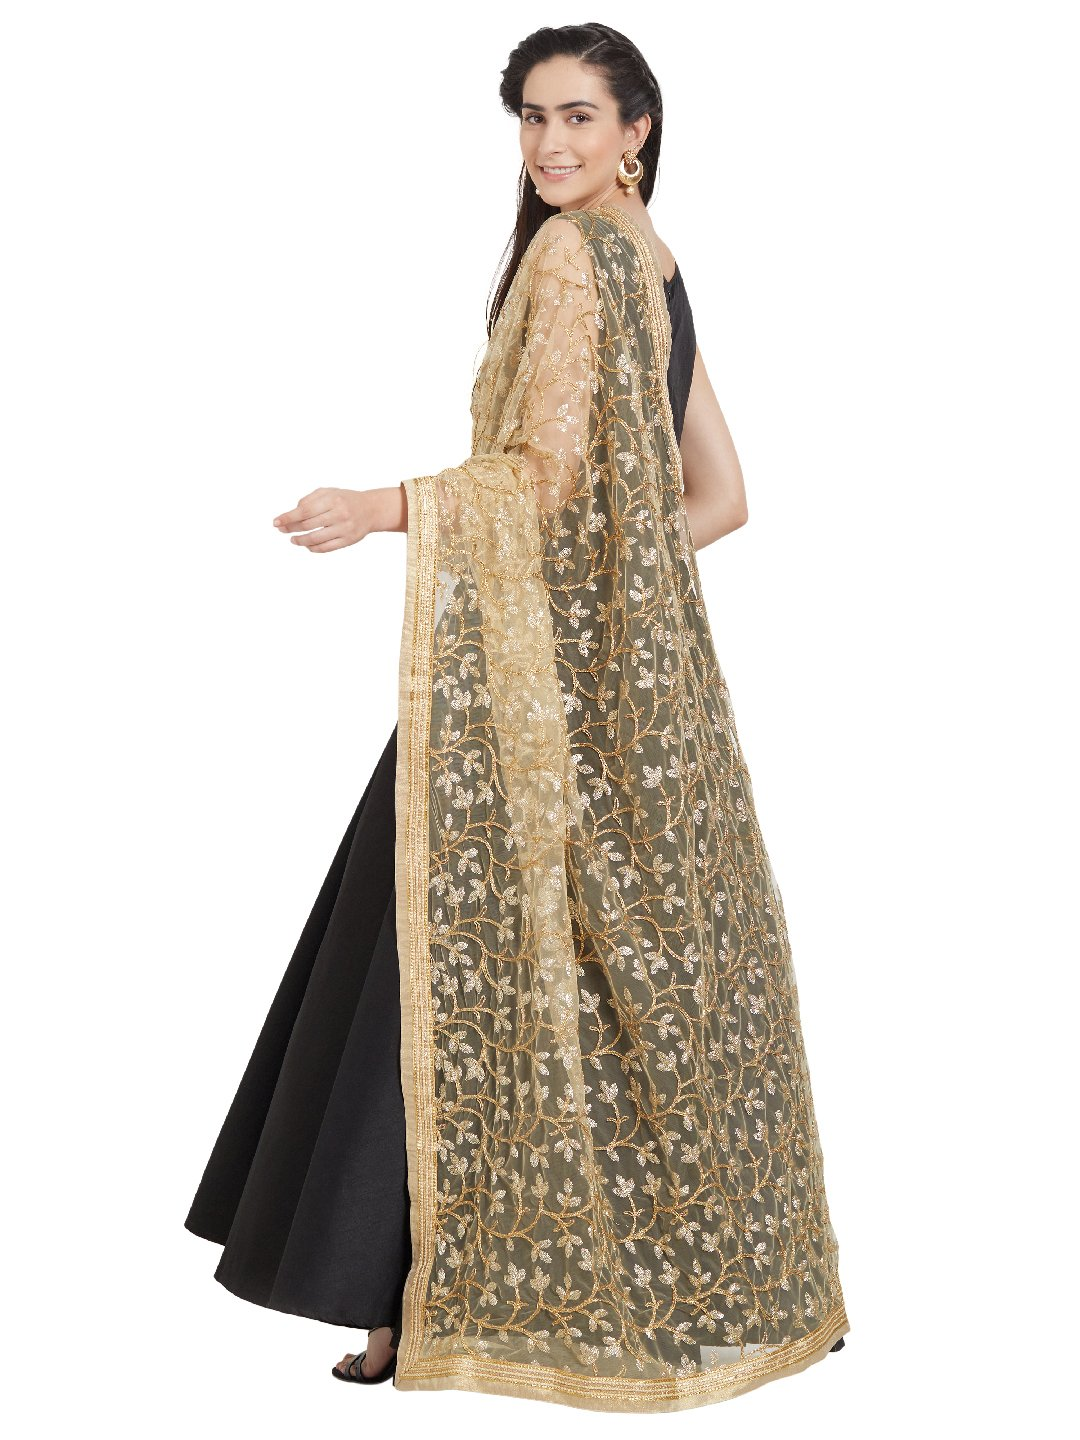 Dupatta Bazaar Woman's Gold Embroidered Net Dupatta